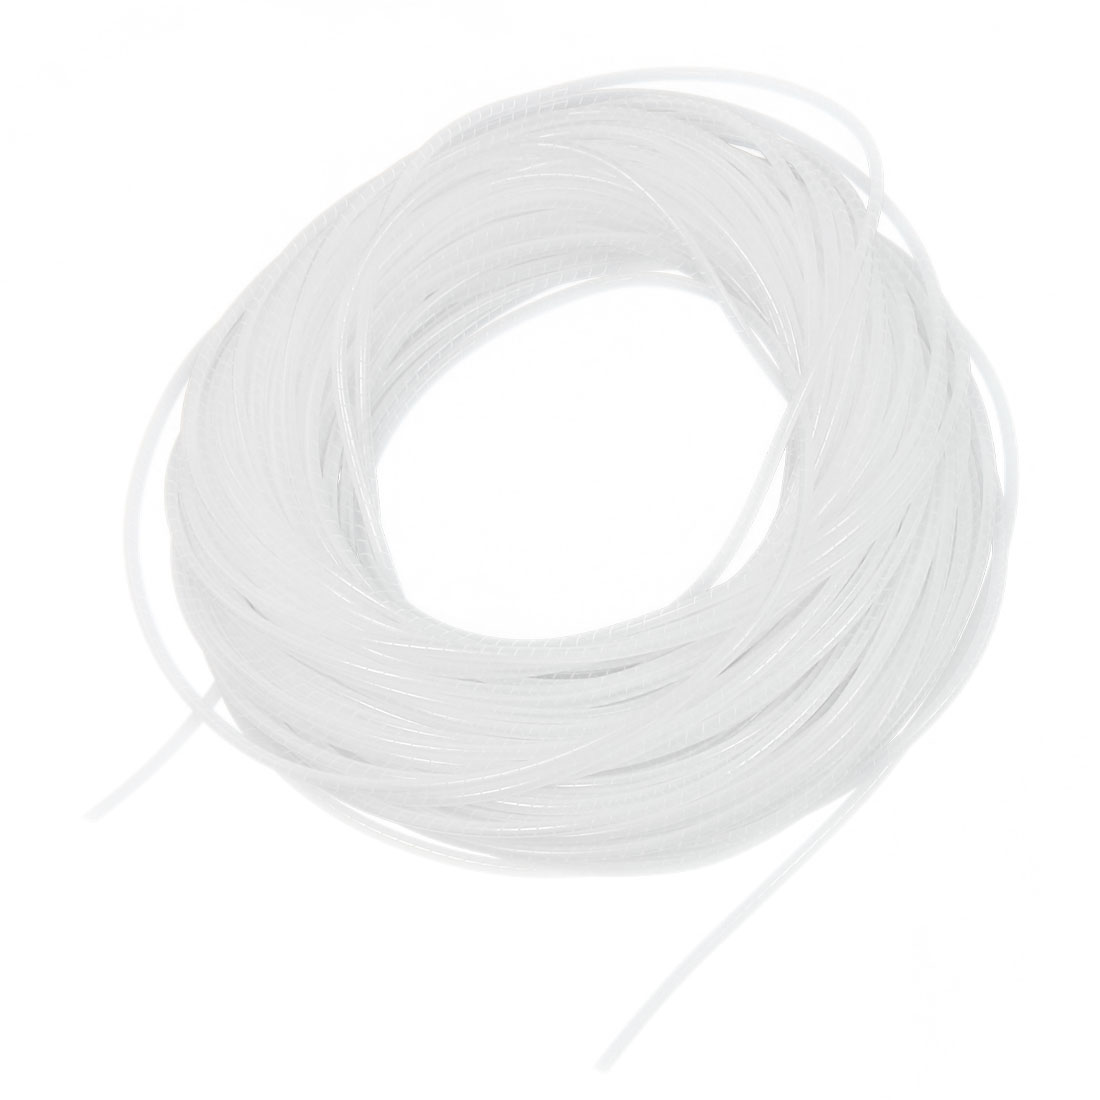 34Meter Long PE Polyethylene 4mm Spiral Cable Wire Wrap Tube White